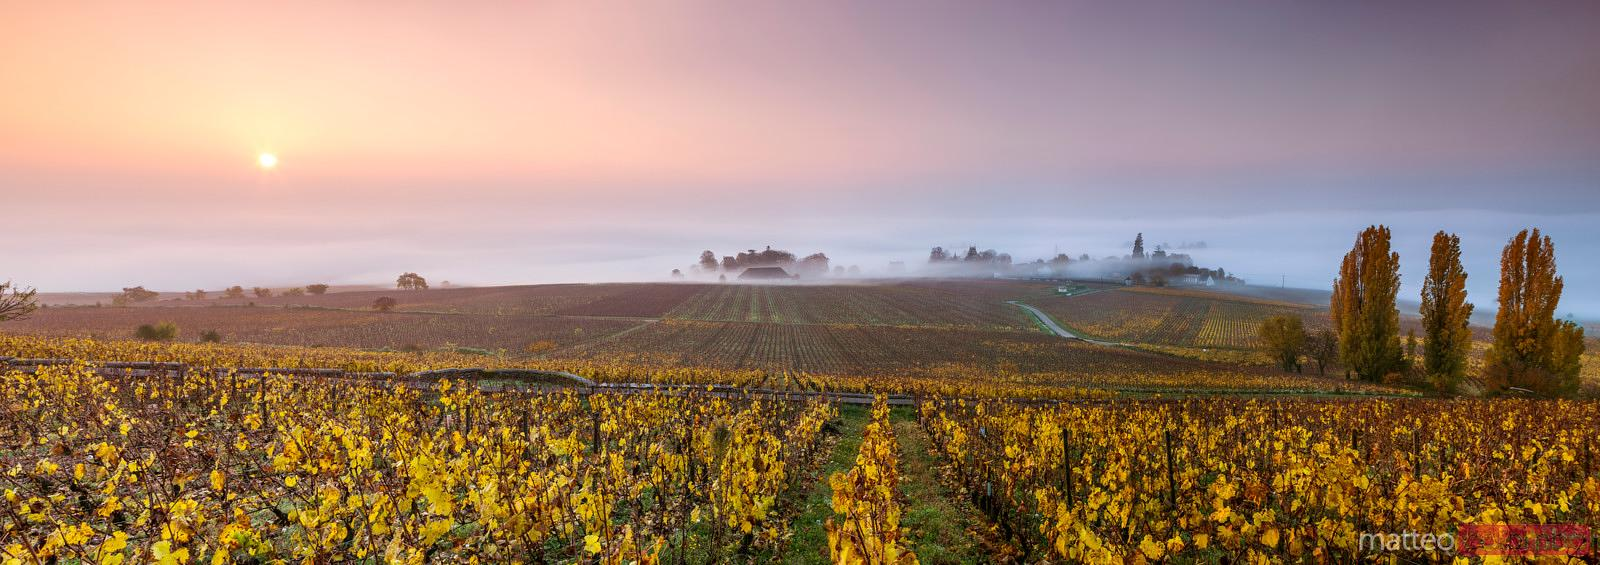 Vineyards in autumn at sunrise, Aloxe Corton, Cote d'Or,  Burgundy, France